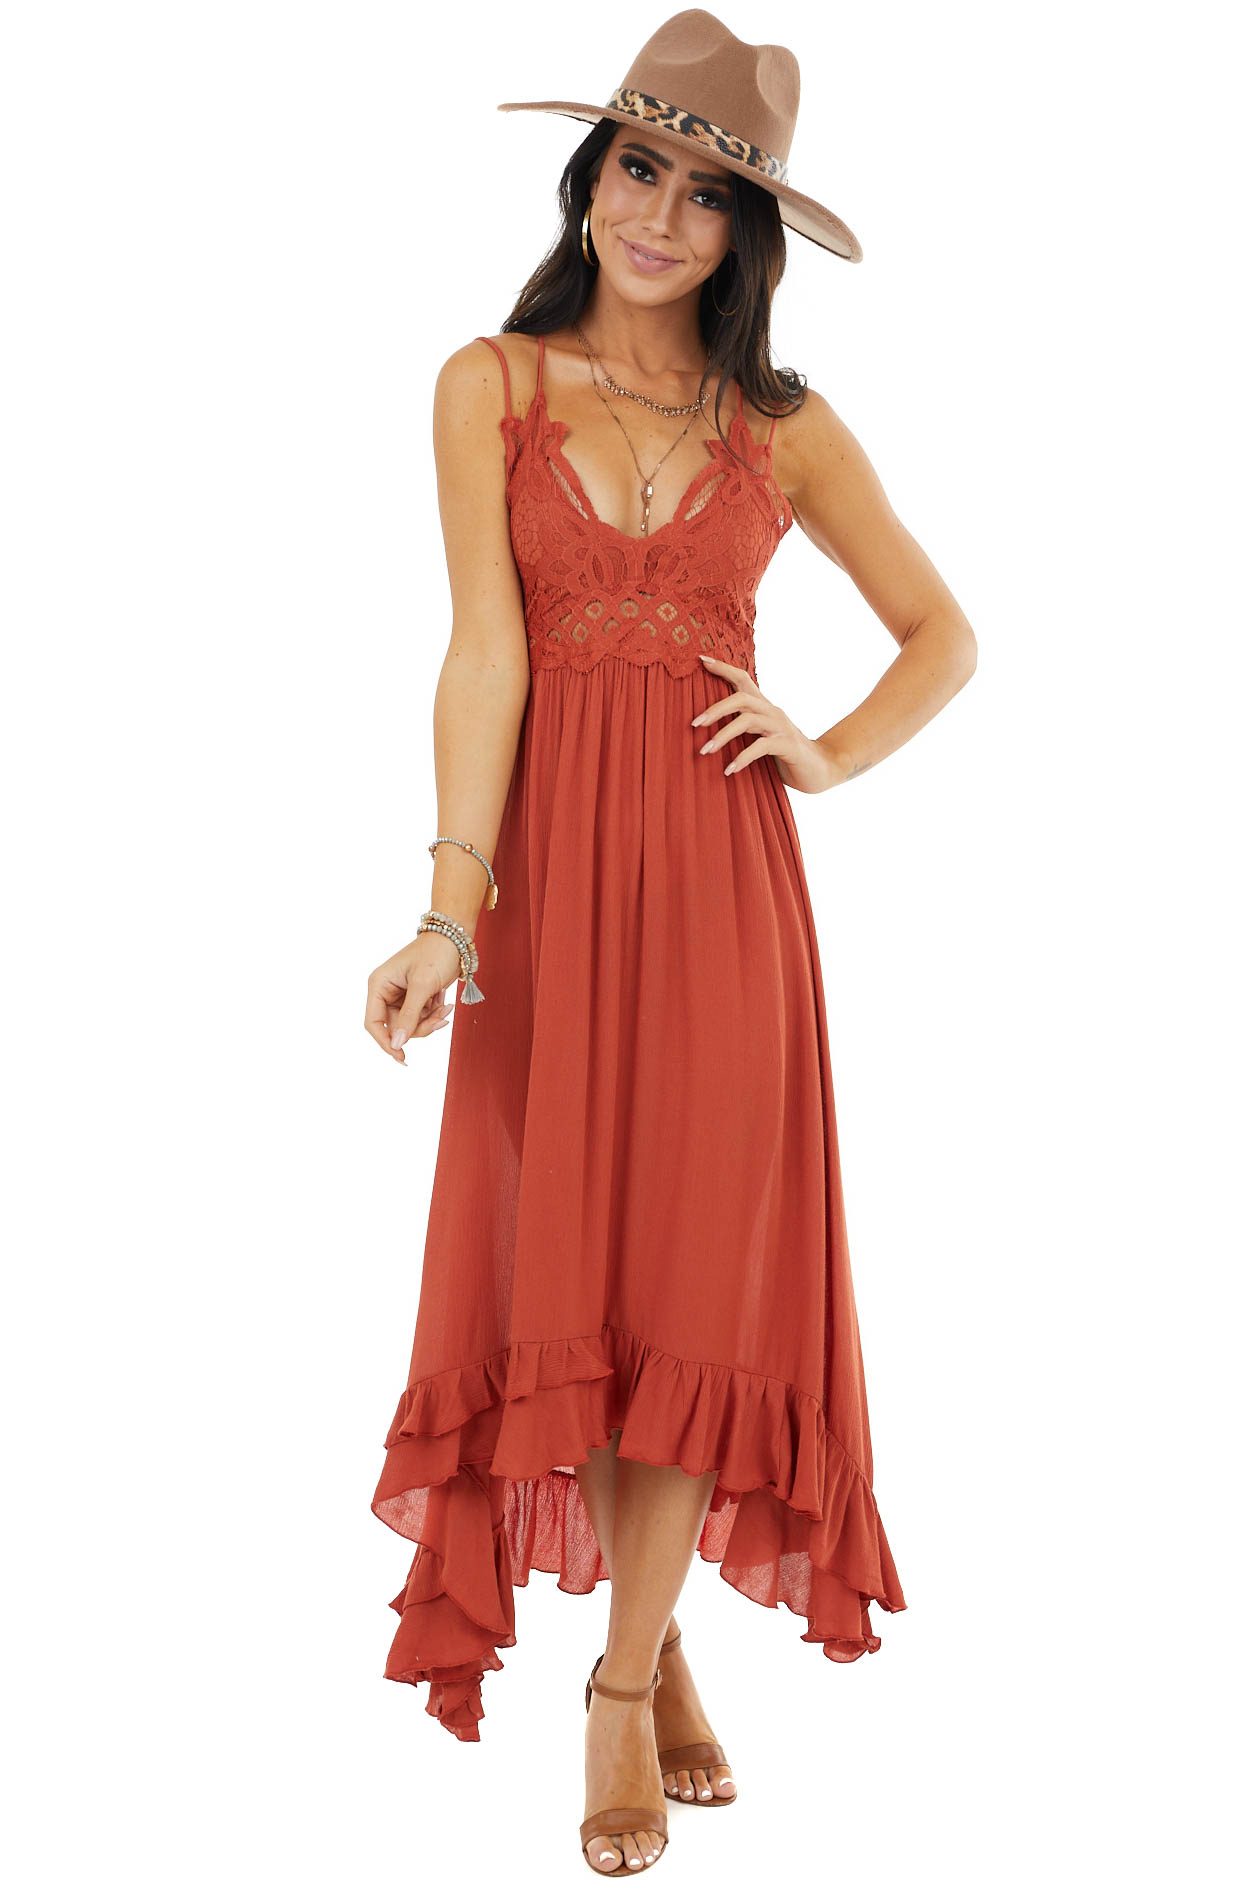 Terracotta Midi Dress with Lace Bust and Peekaboo Details